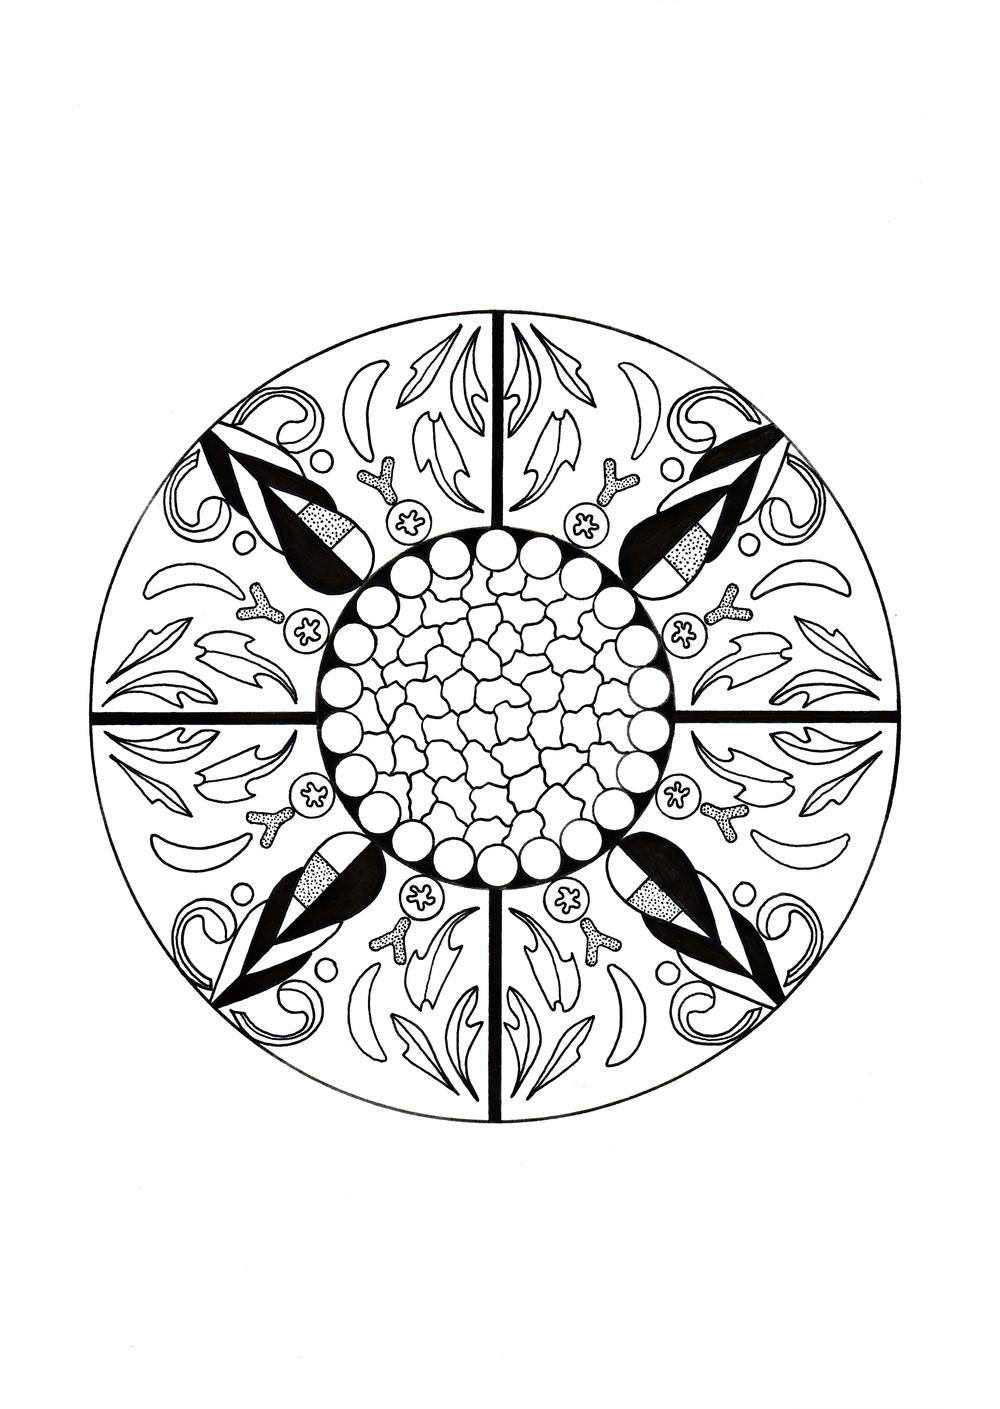 morocco coloring pages 268 best images about adult coloring pages on pinterest morocco pages coloring